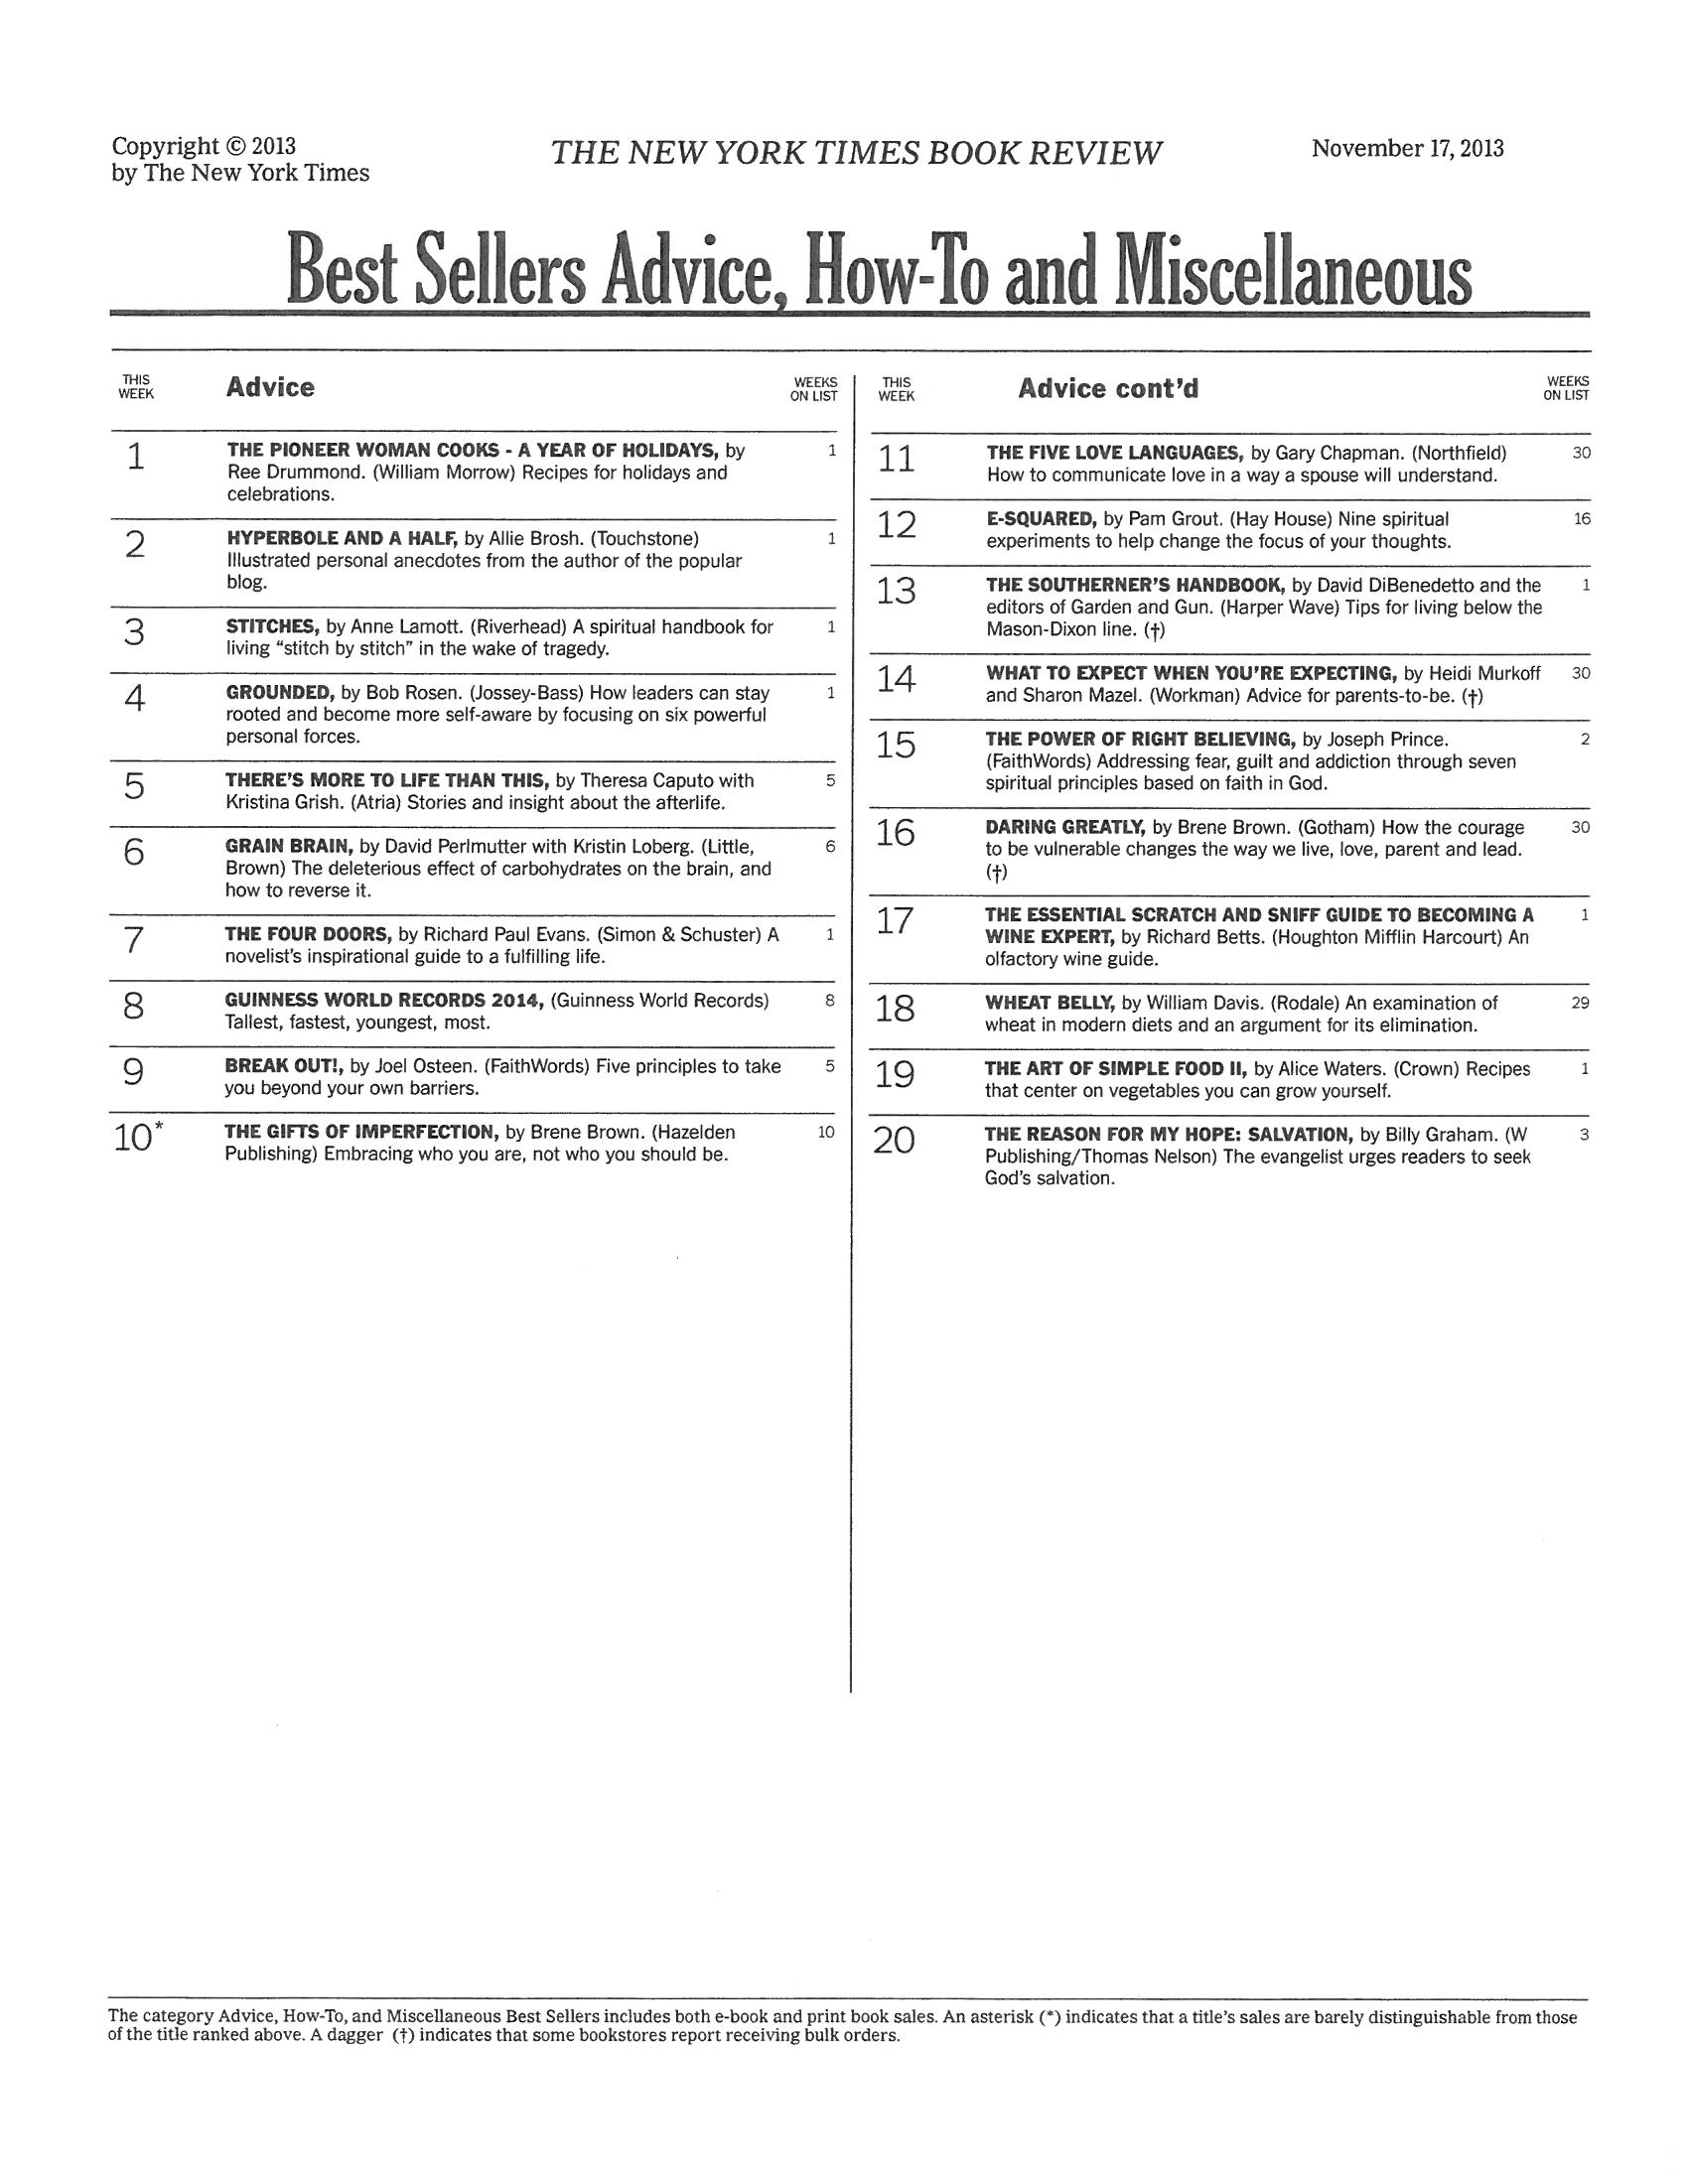 New book grounded makes new york times best seller list healthy